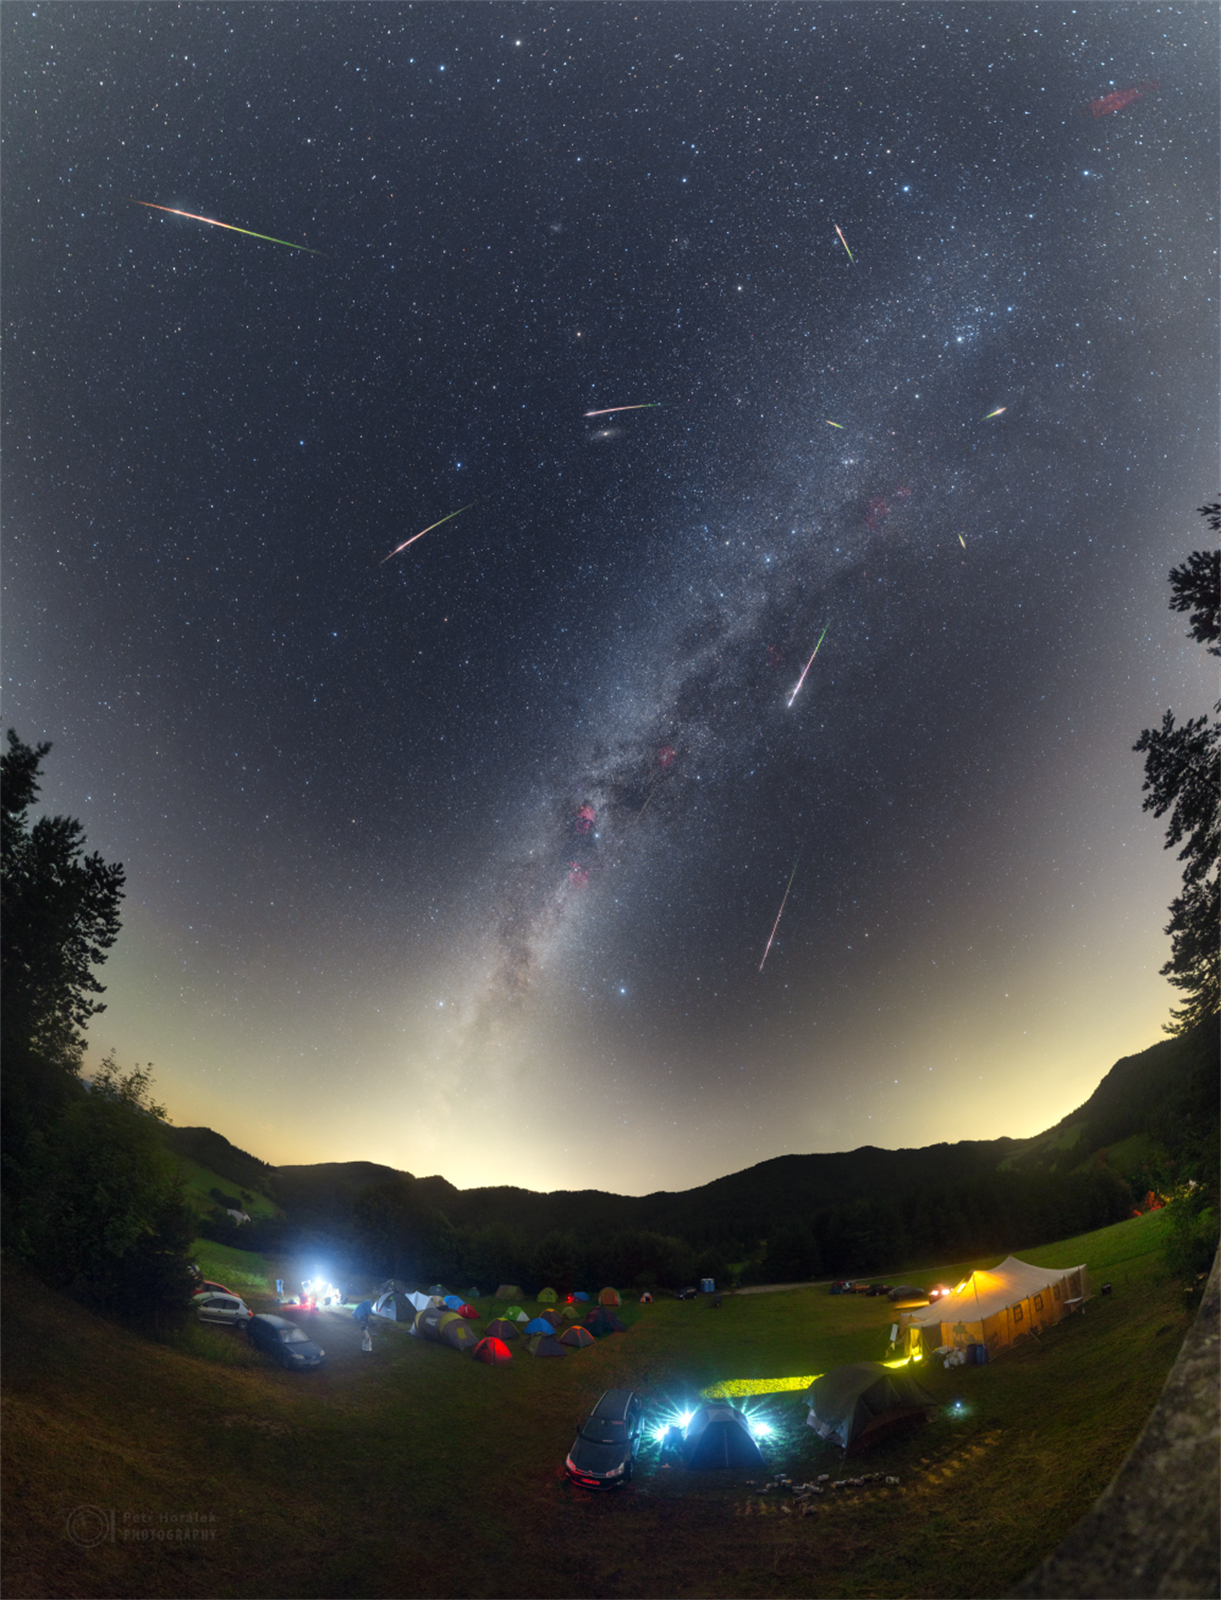 The Milky Way and a meteor shower - Fizrock - bit.ly2wEbYqm